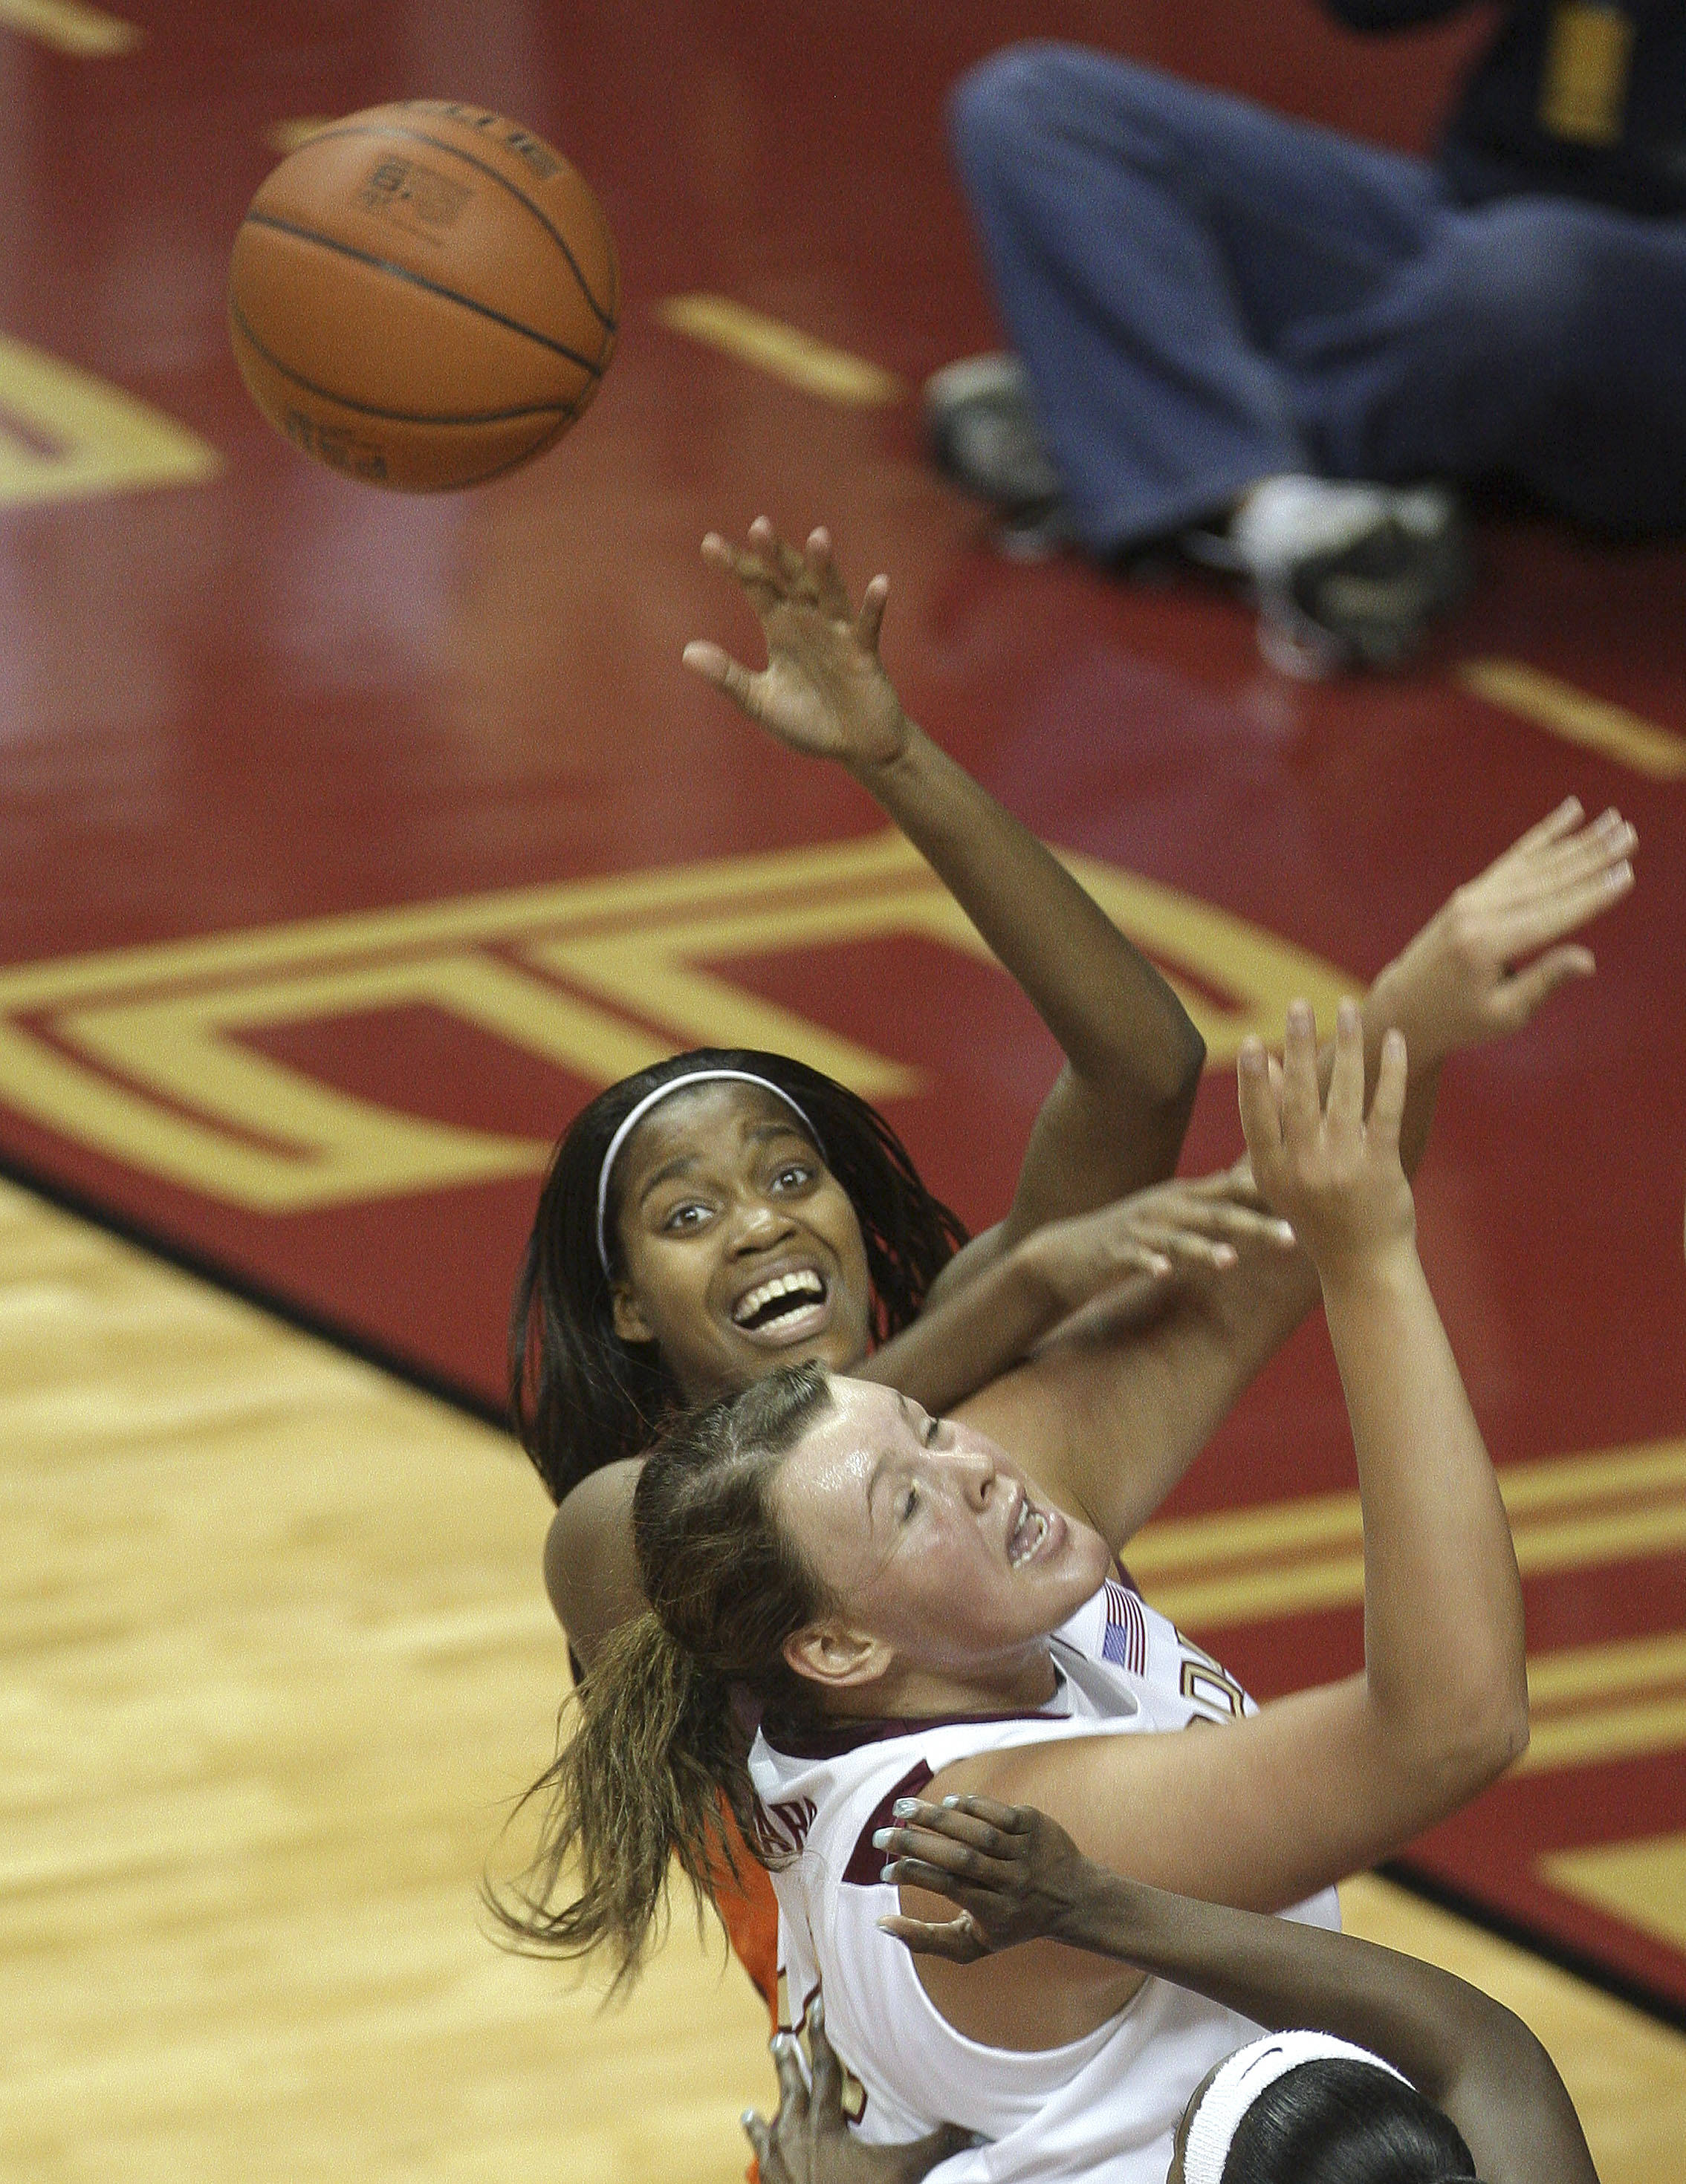 Florida State's Cierra Bravard, front, and Virginia Tech's Porschia Hadley, rear, look for a second-half rebound during an NCAA college basketball game, Thursday, Feb. 18, 2010, in Tallahassee, Fla. (AP Photo/Phil Coale)